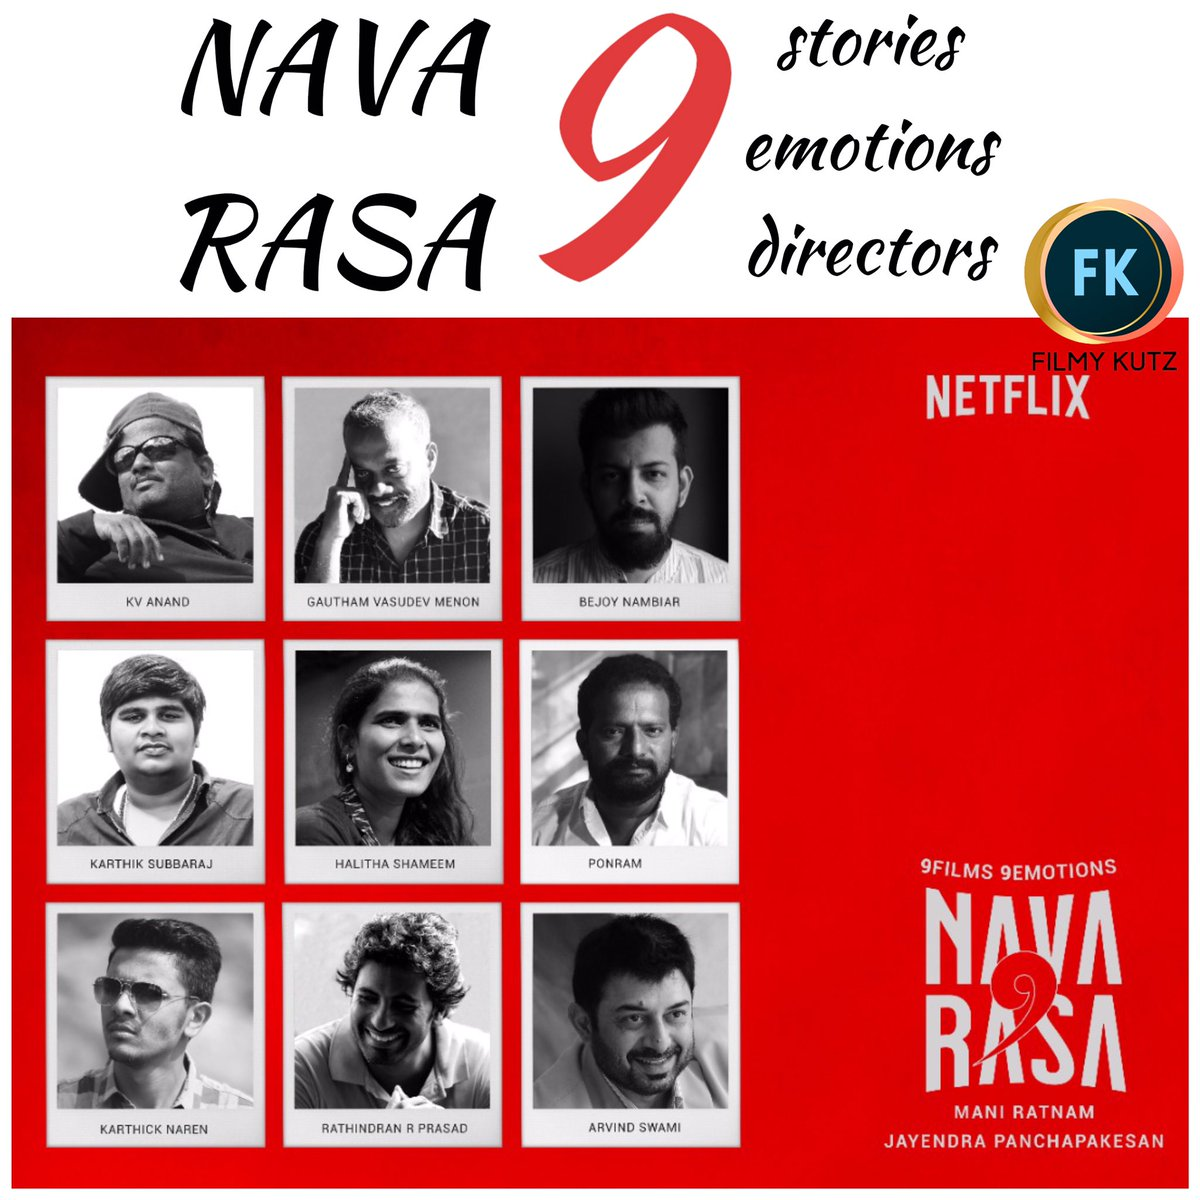 #NAVARASA - 9 films, 9 emotions and 9 story tellers   Coming very soon on #Netflix   Check the cast and crew details 👇 https://t.co/yIWIv7CXJK